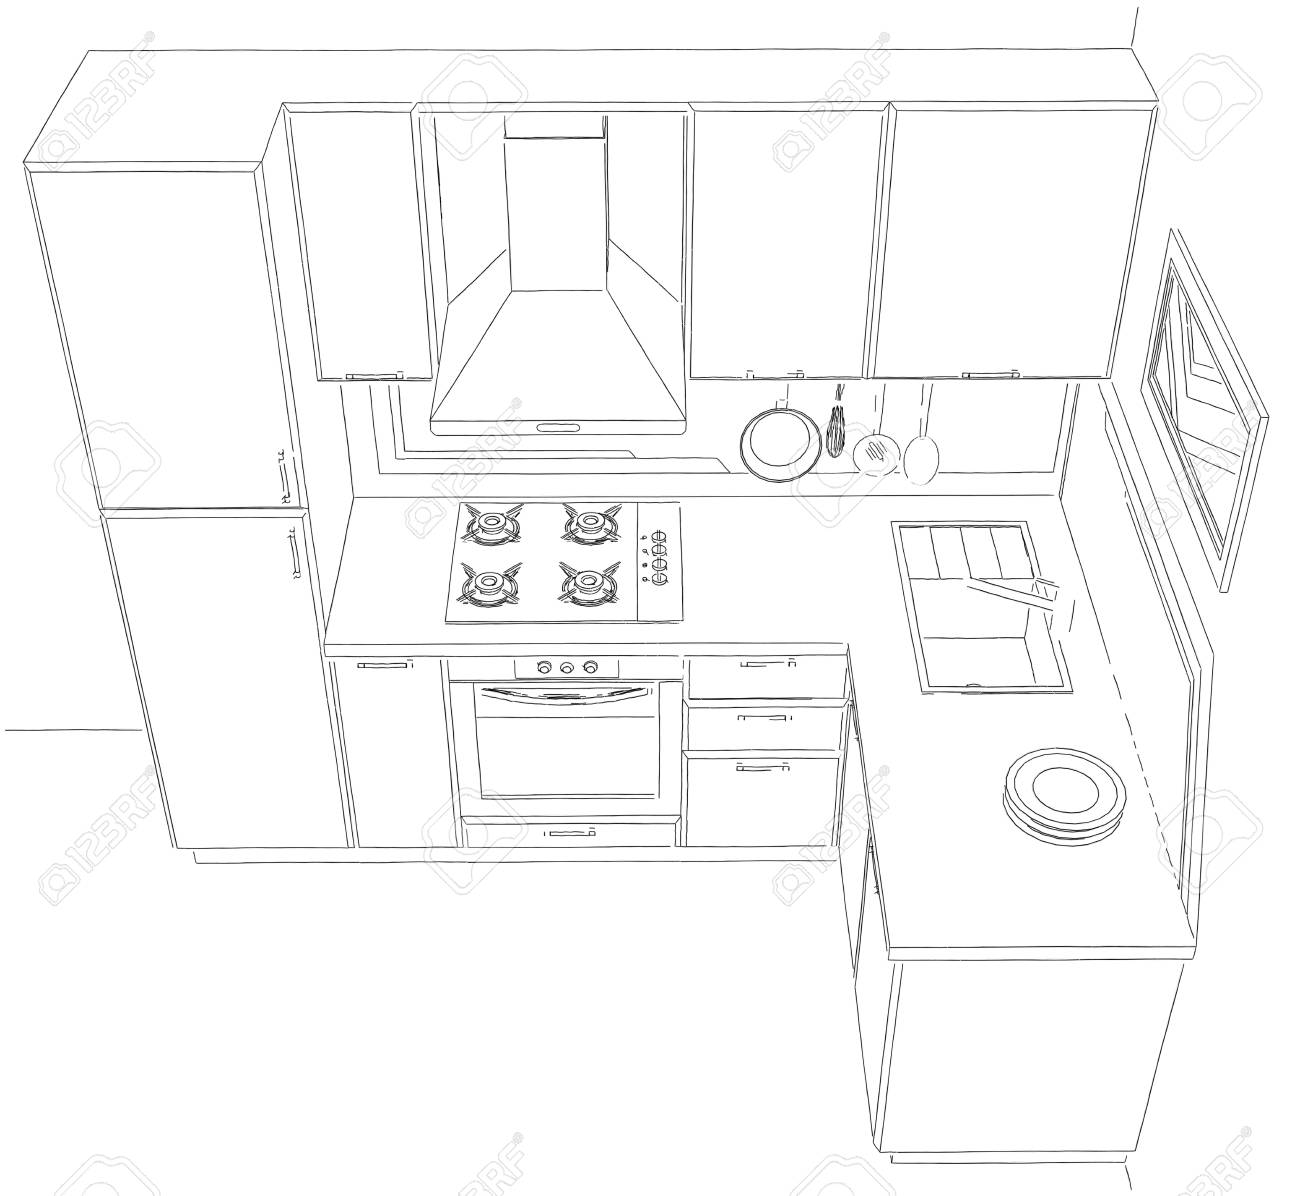 Small corner kitchen interior 3d contour illustration top perspective view stock illustration 73865526